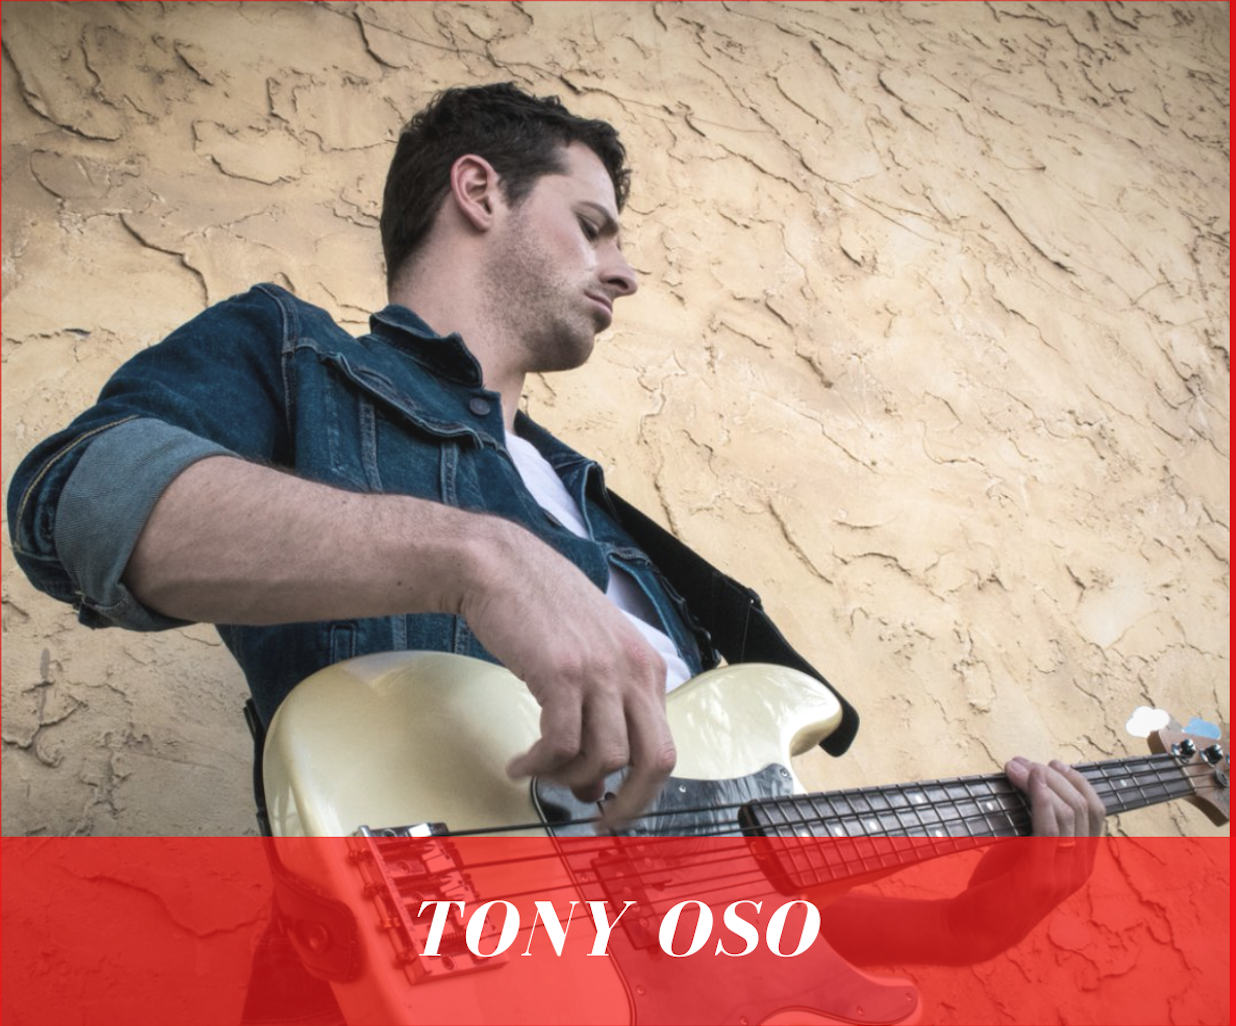 Tony Oso is Inspiring musicians to be brave